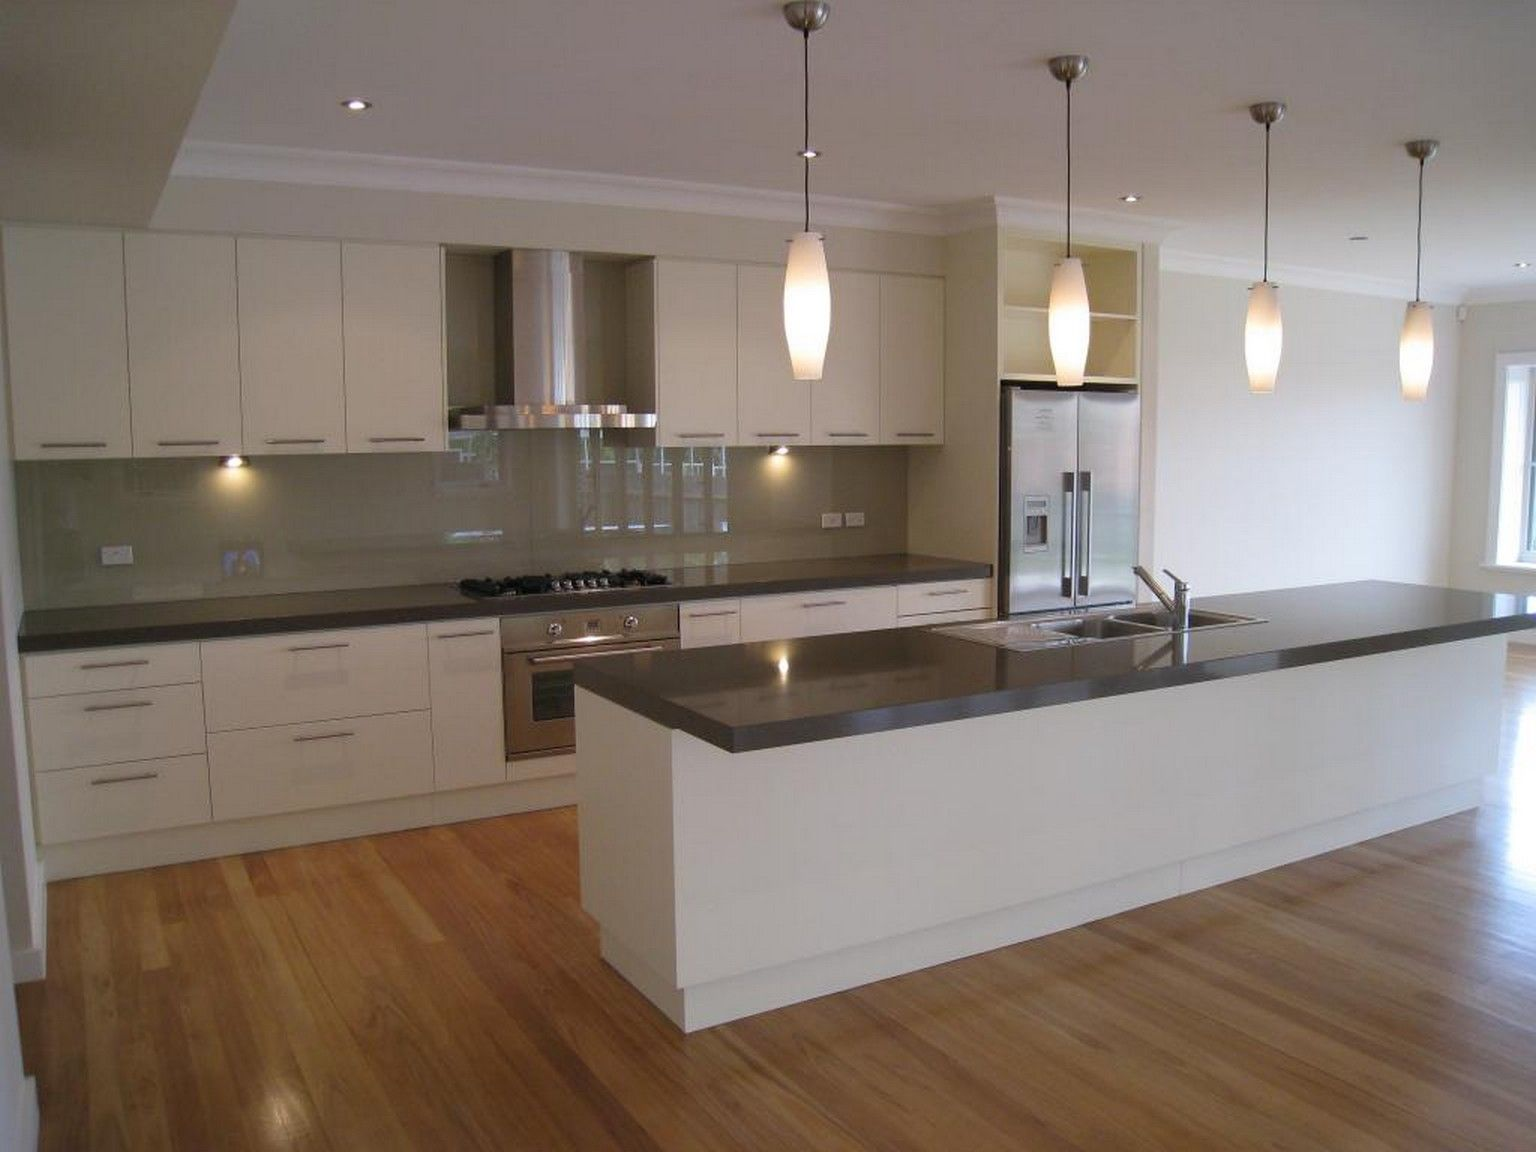 Charmant Kitchen Design Ideas Australia For Small Kitchen Design